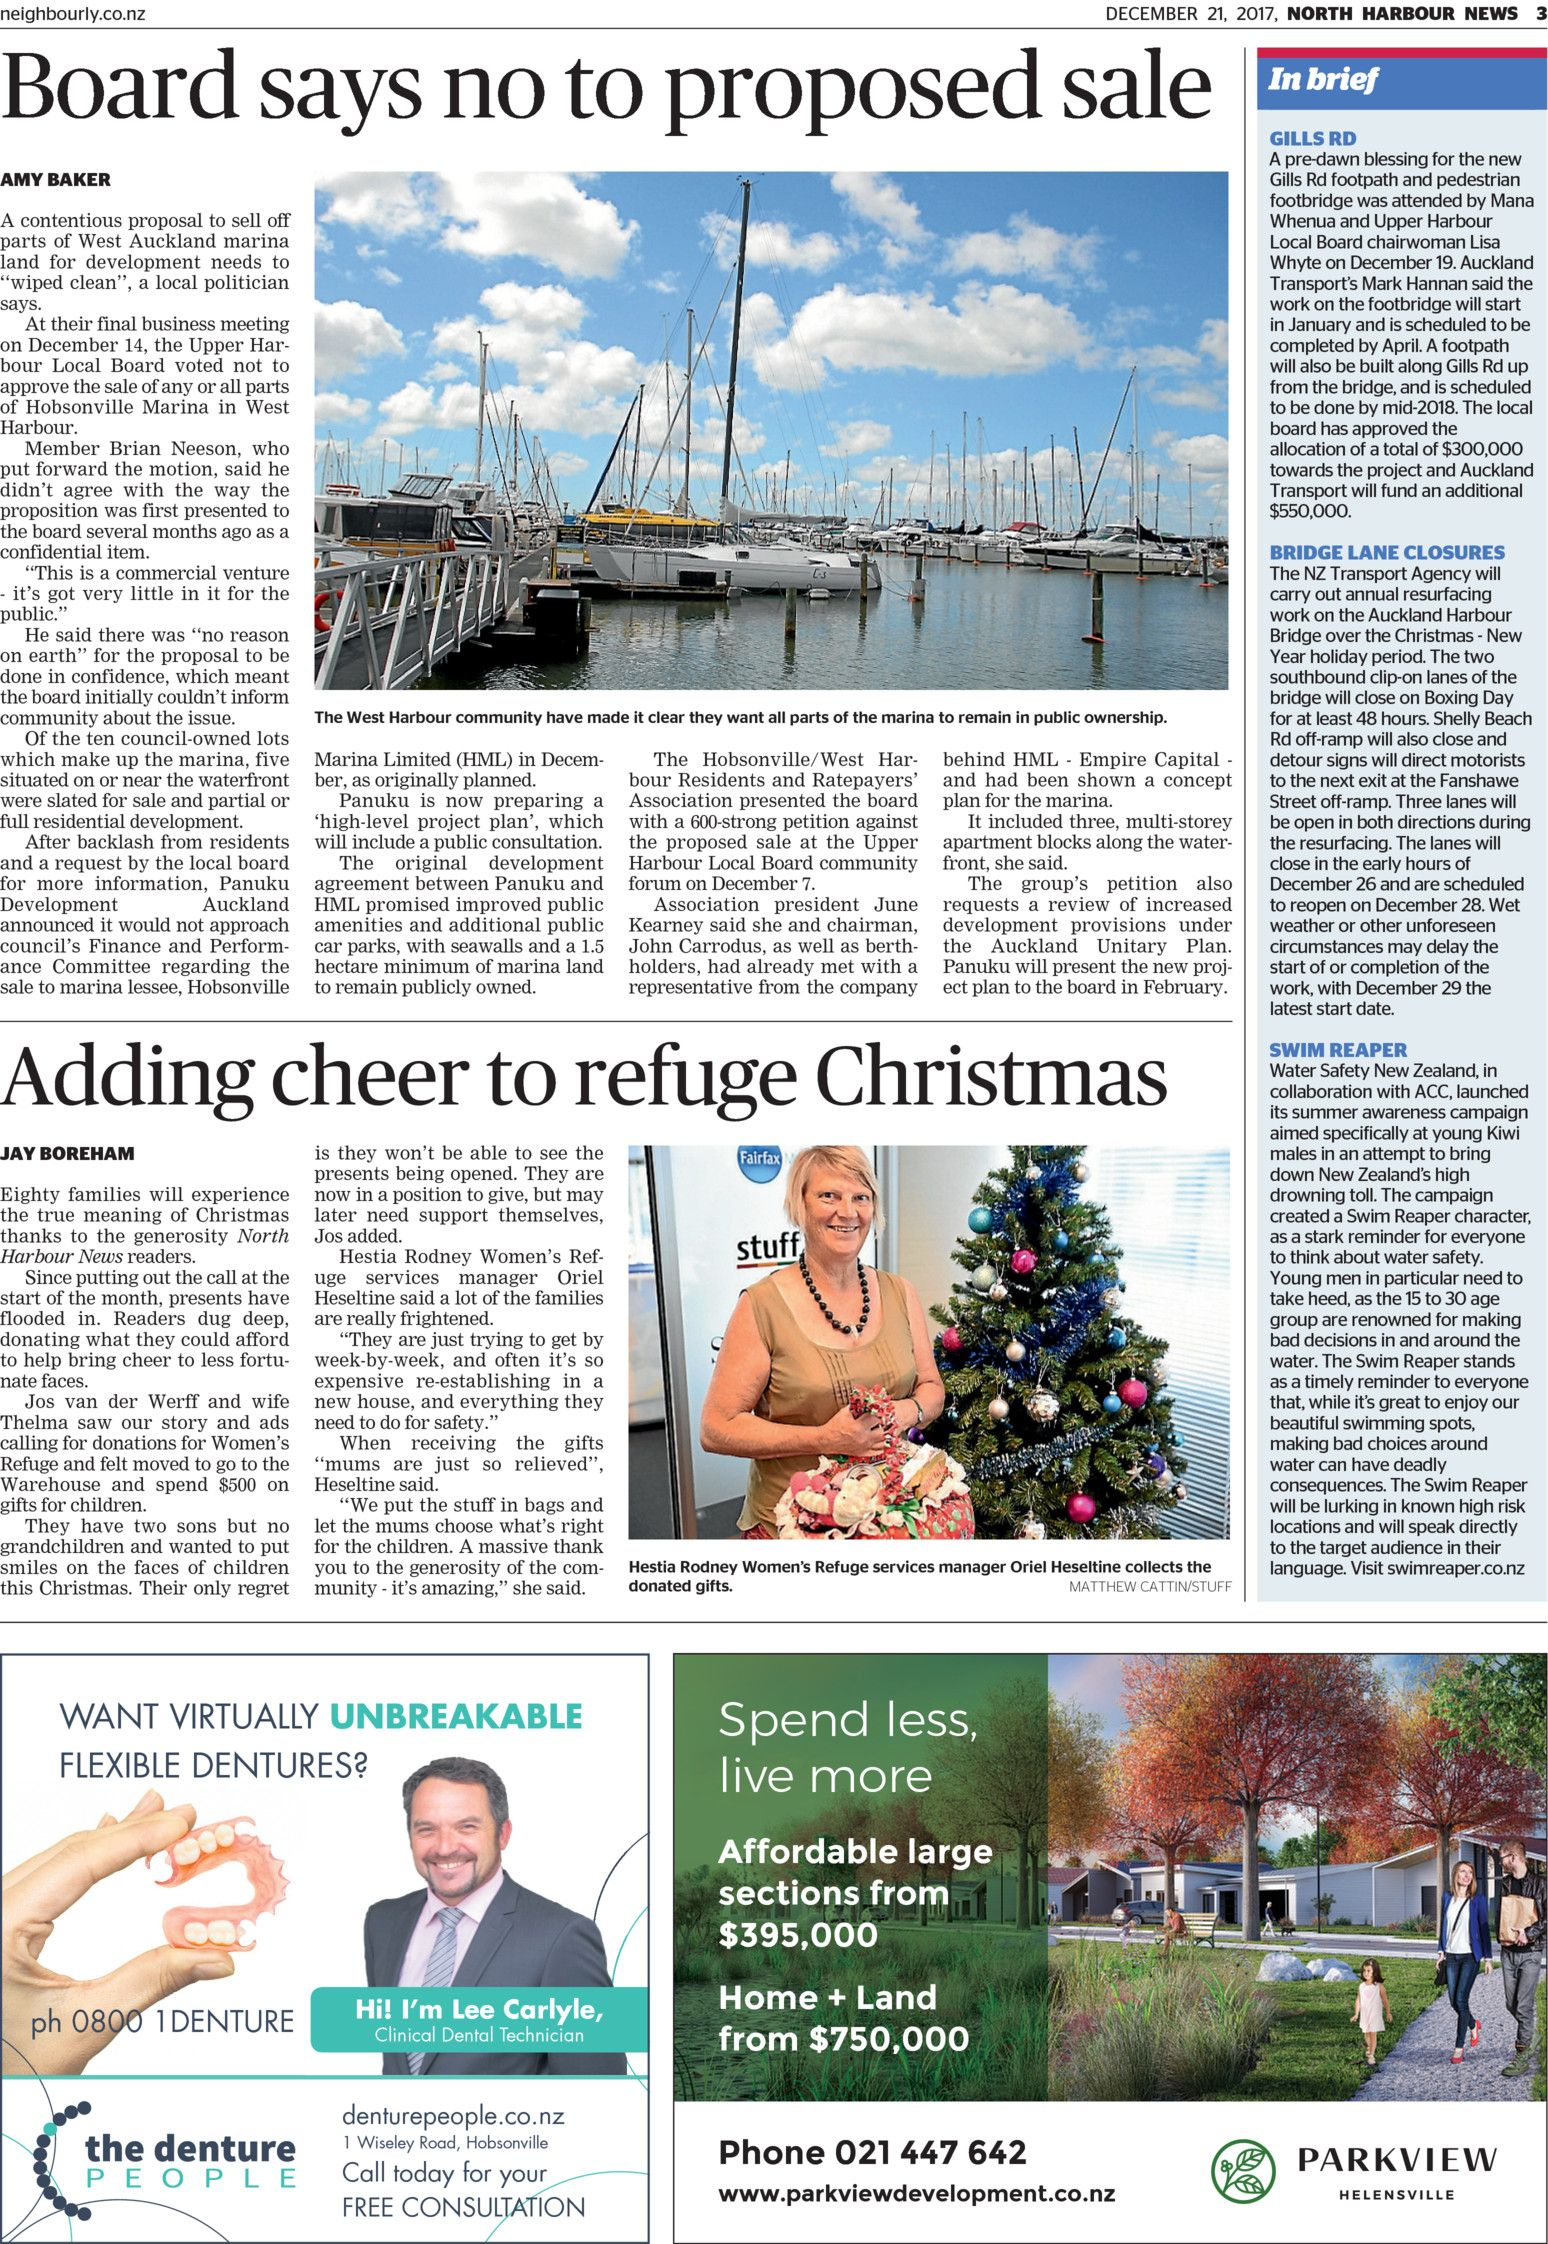 North Harbour News - Read online on Neighbourly